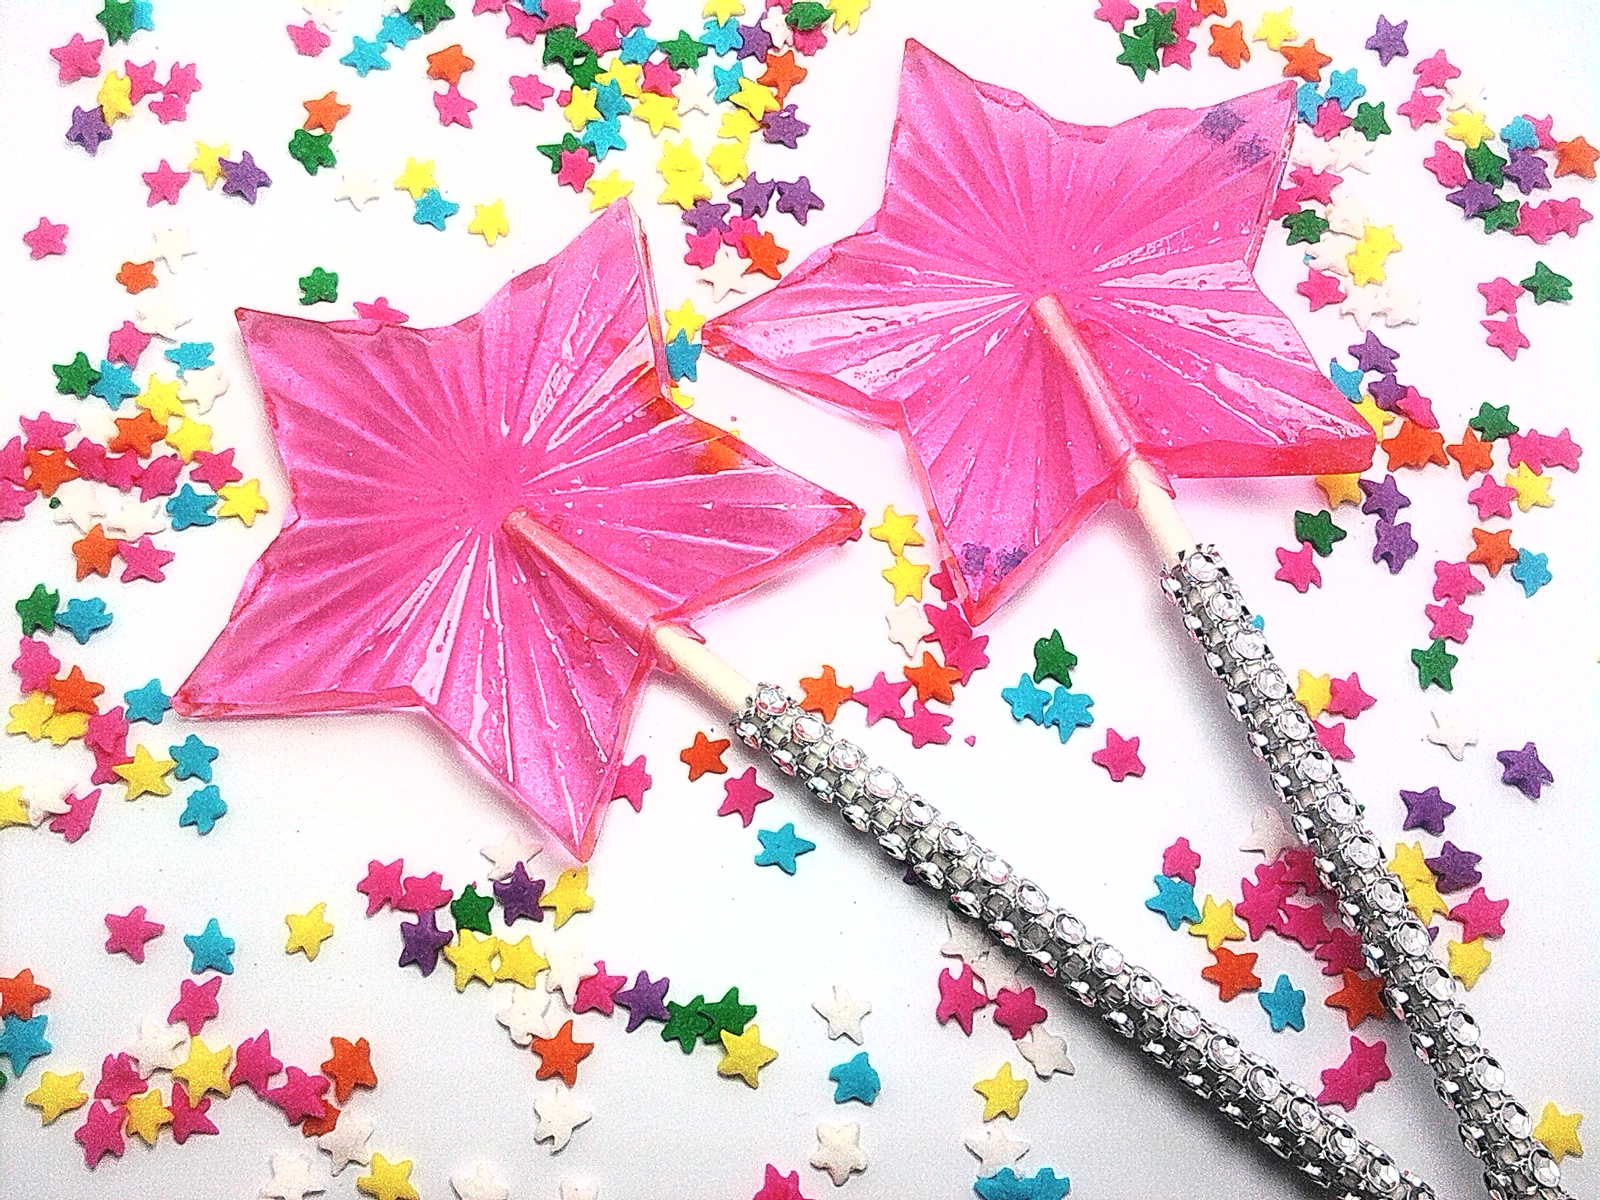 12 BLING RADIANT STAR LOLLIPOPS - Featured in Brides Magazine ...